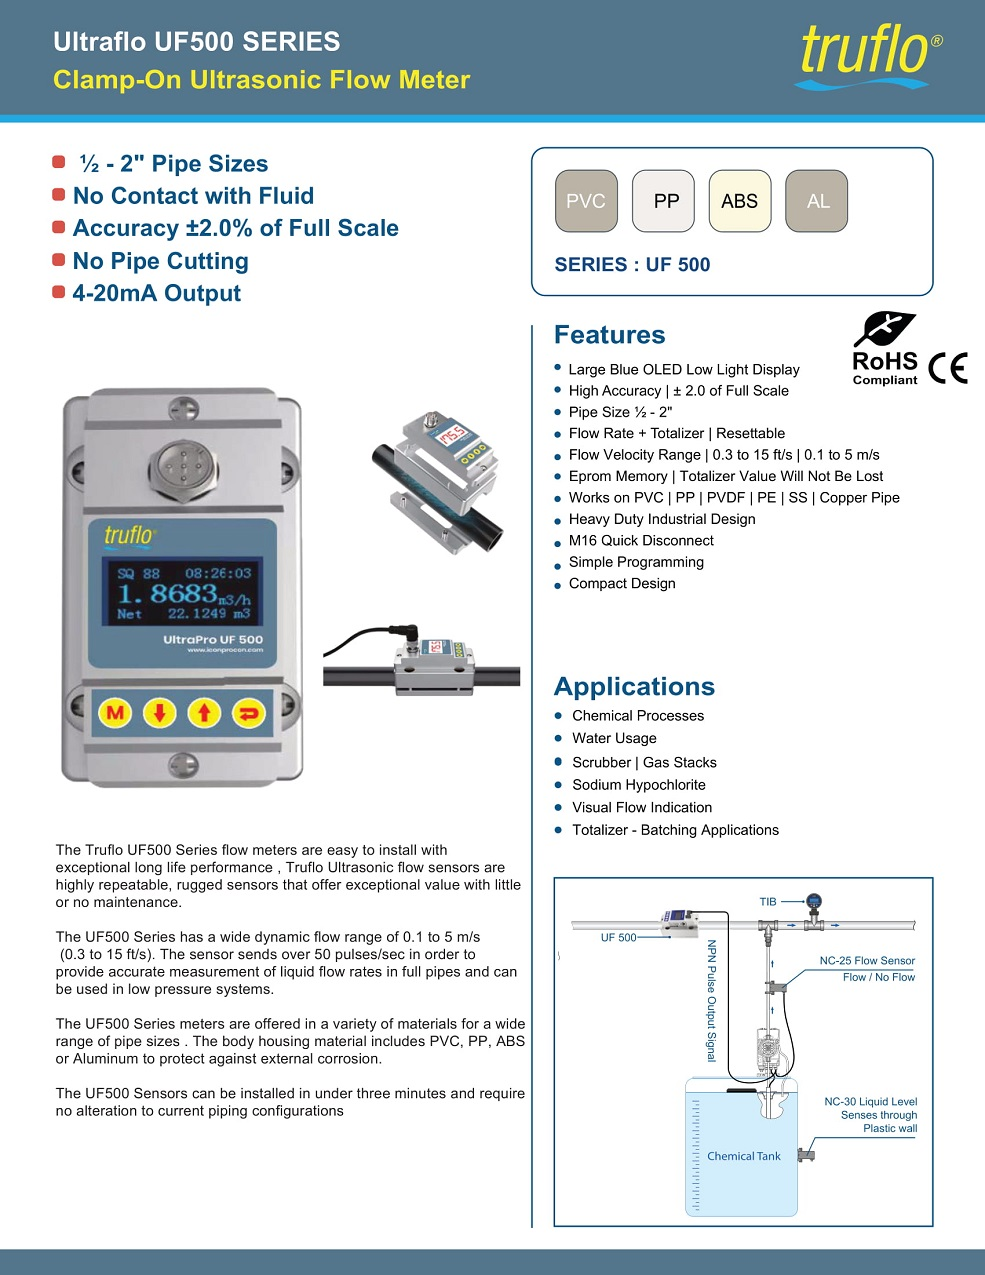 Ultraflo UF500 Clamp-On Ultrasonic Flow Meter